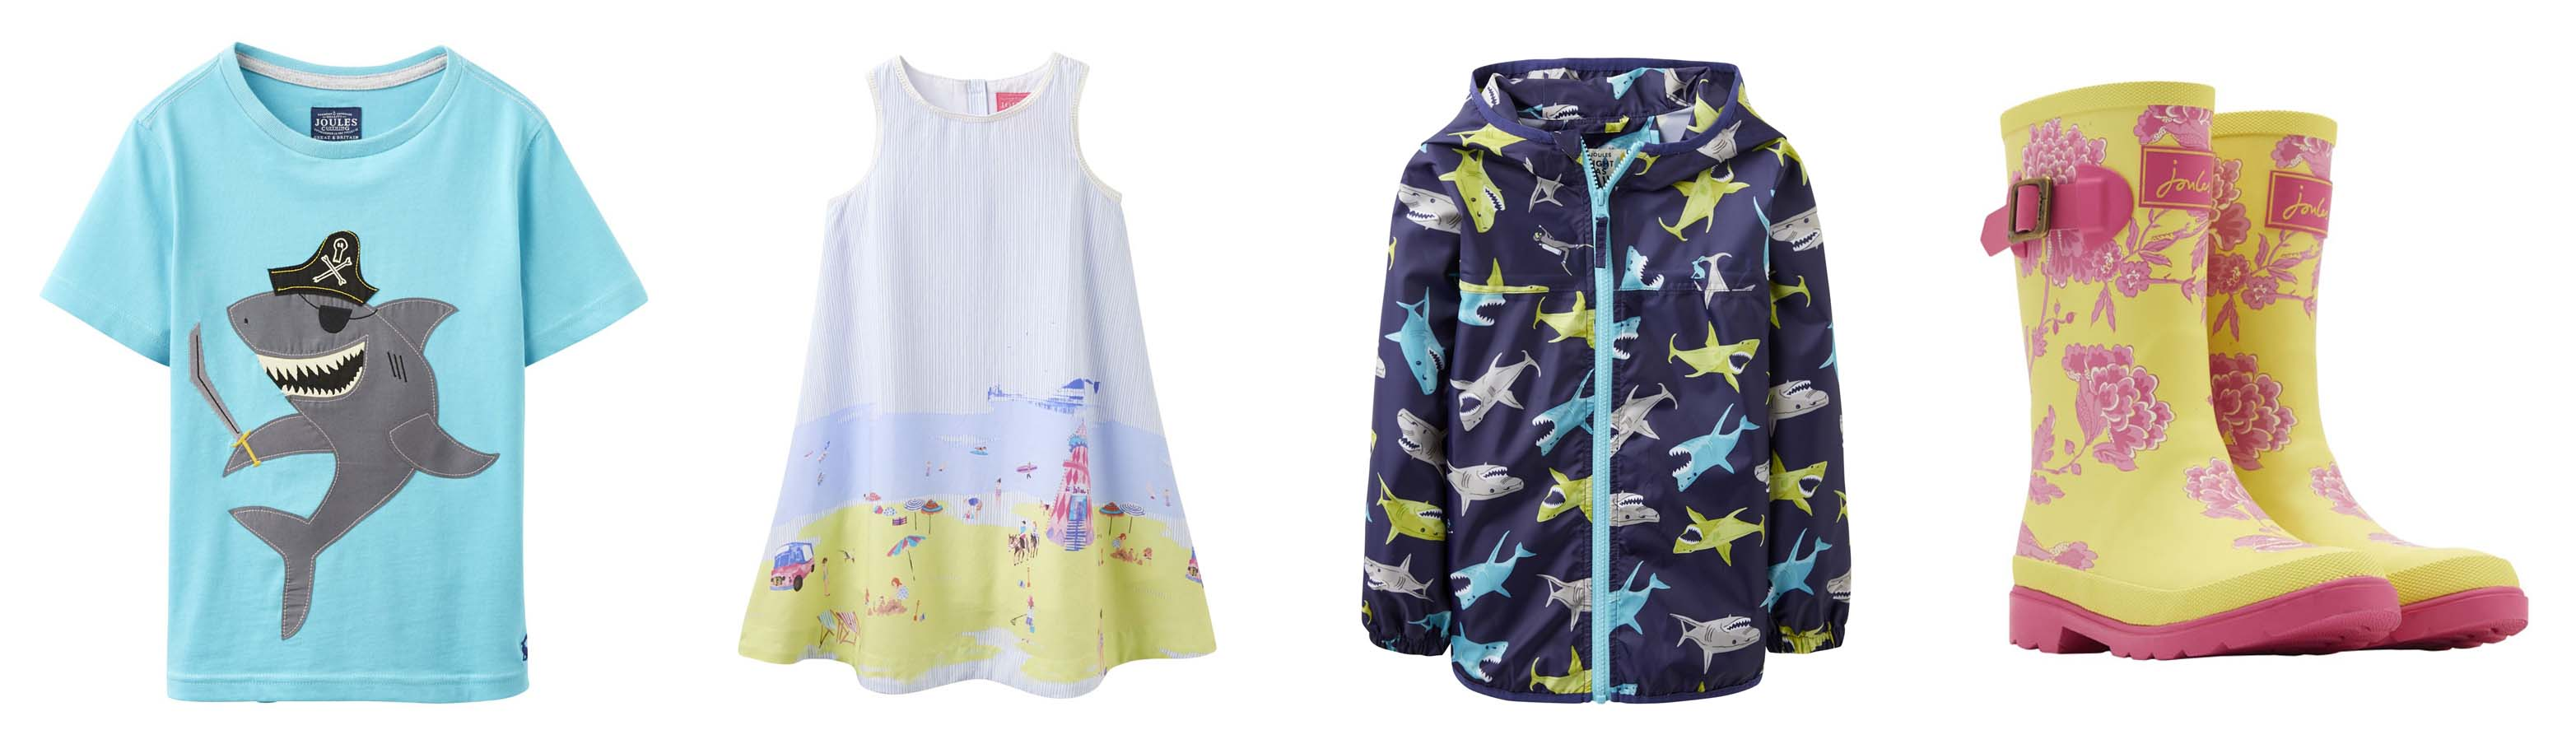 colourful joules clothing for children, joules kids coats, joules girls dresses, joules kids